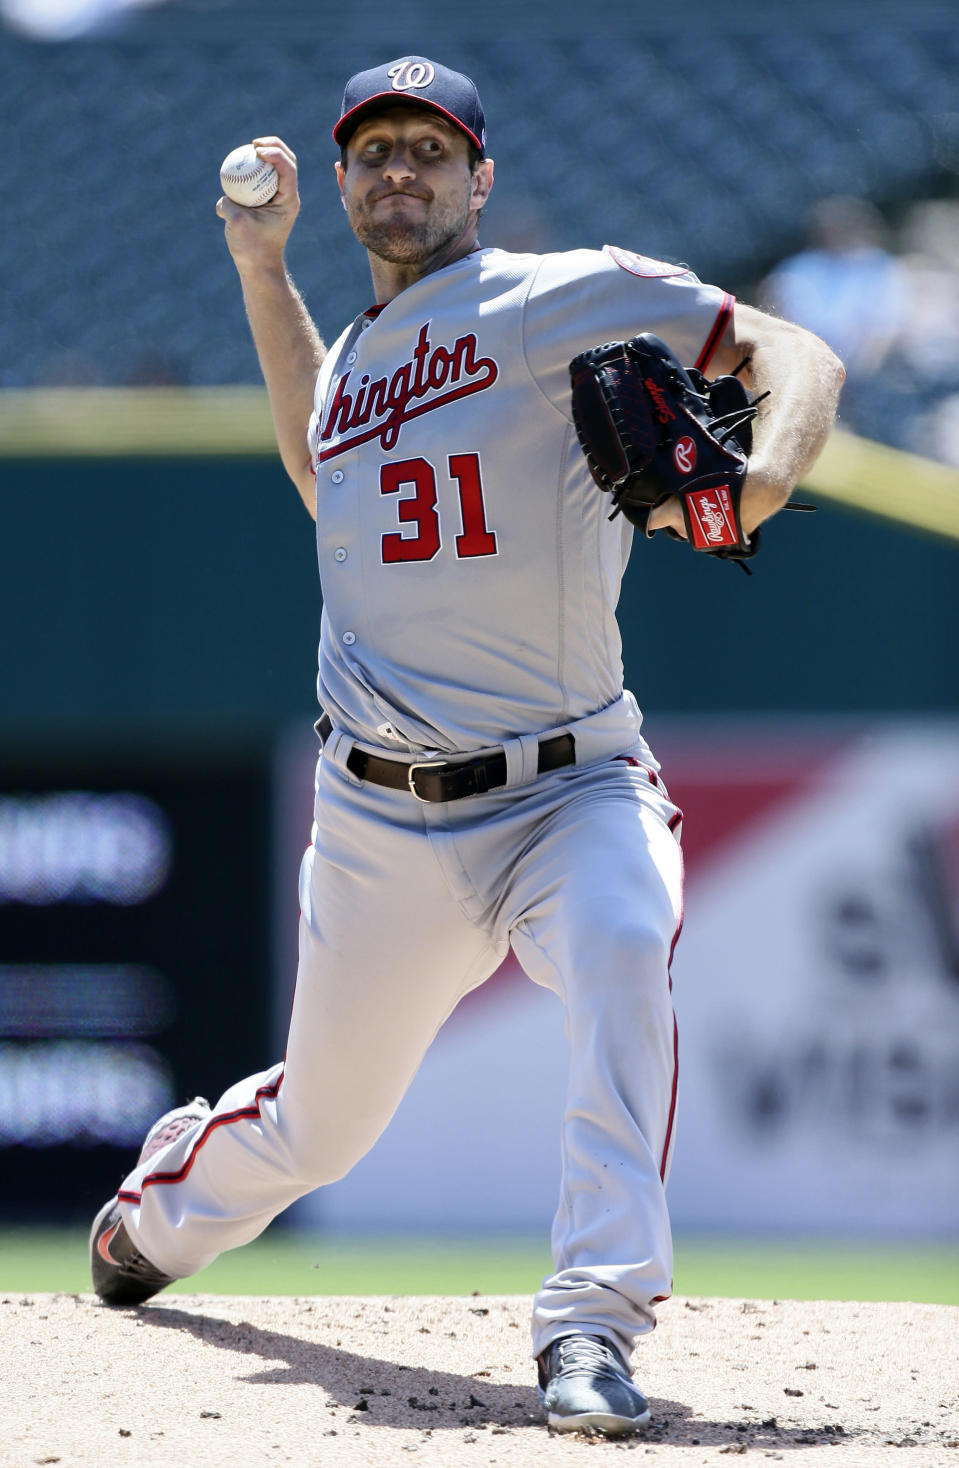 Washington Nationals' Max Scherzer pitches against the Detroit Tigers during the first inning of a baseball game Sunday, June 30, 2019, in Detroit. (AP Photo/Duane Burleson)